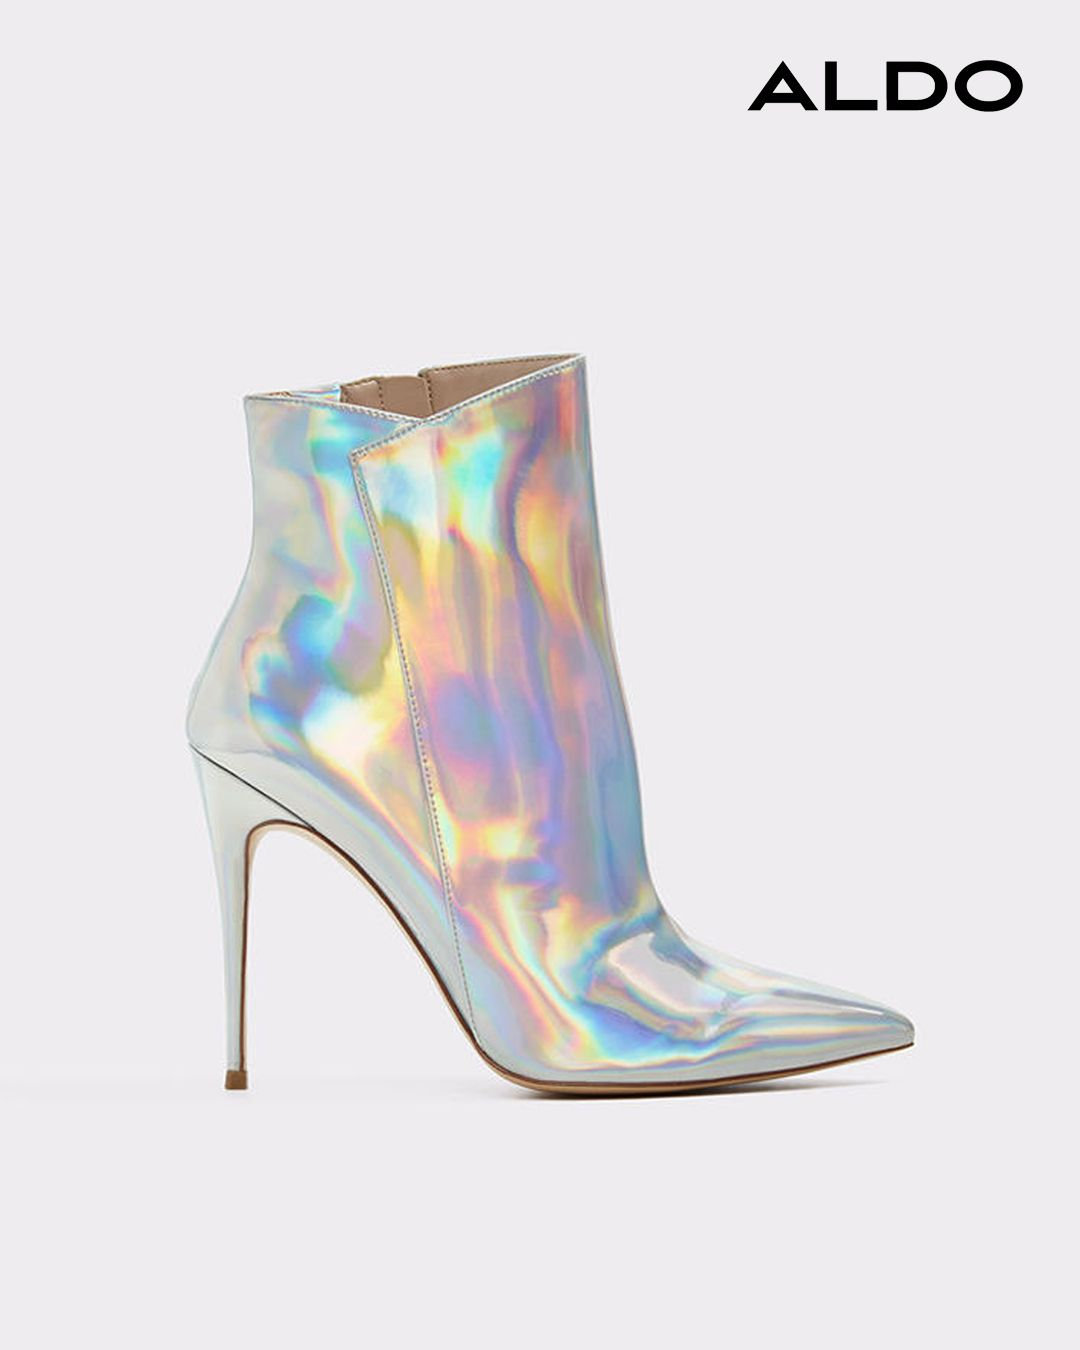 e49c955ddafb Shine and slay through party season   beyond in iridescent heel boot  Merealonna.  Aldo  boots  stiletto  iridescent  shine  slay